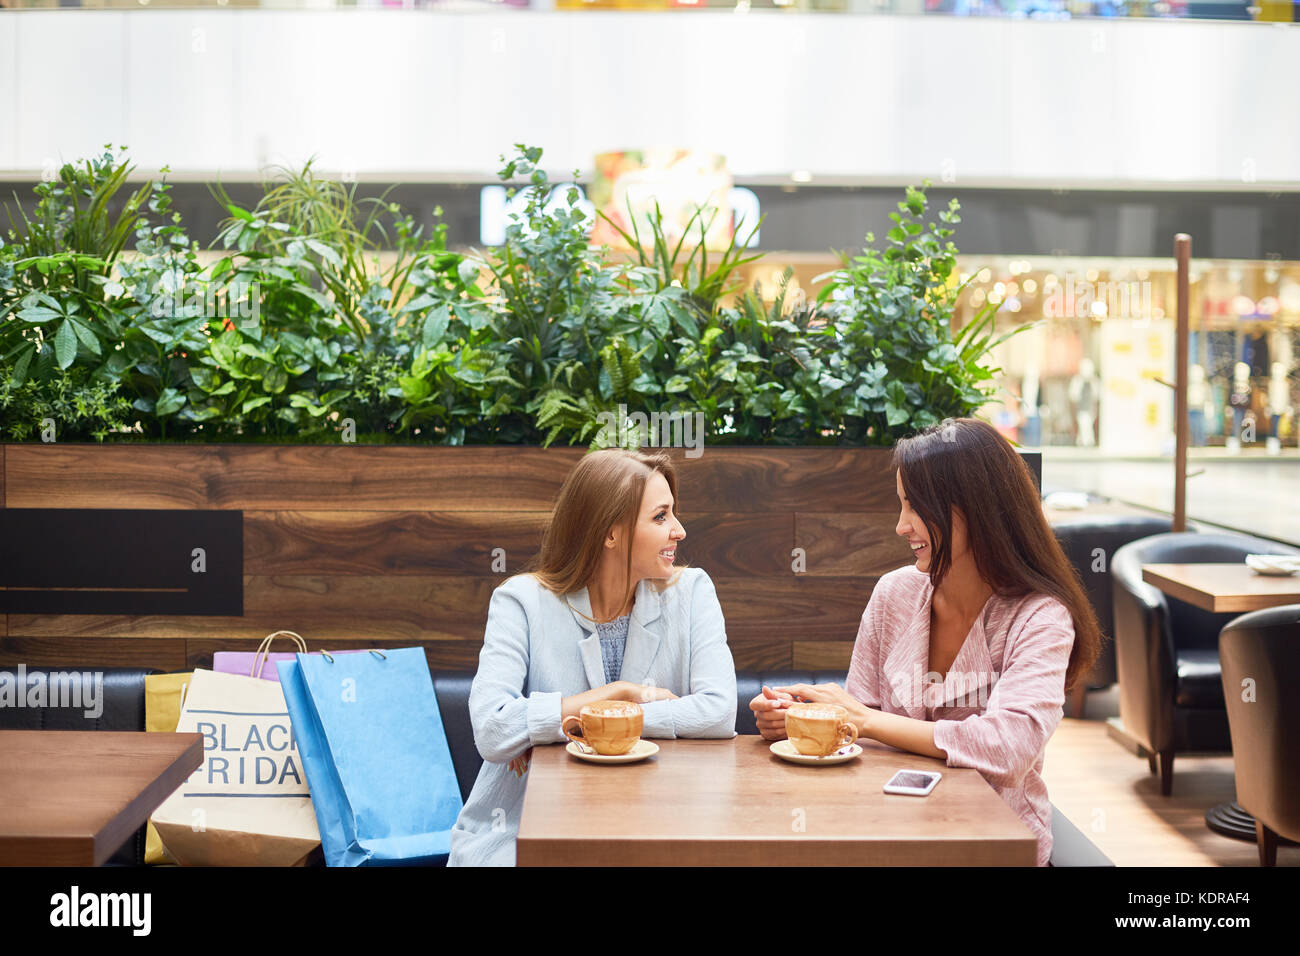 Young Women in Shopping Center Cafe - Stock Image